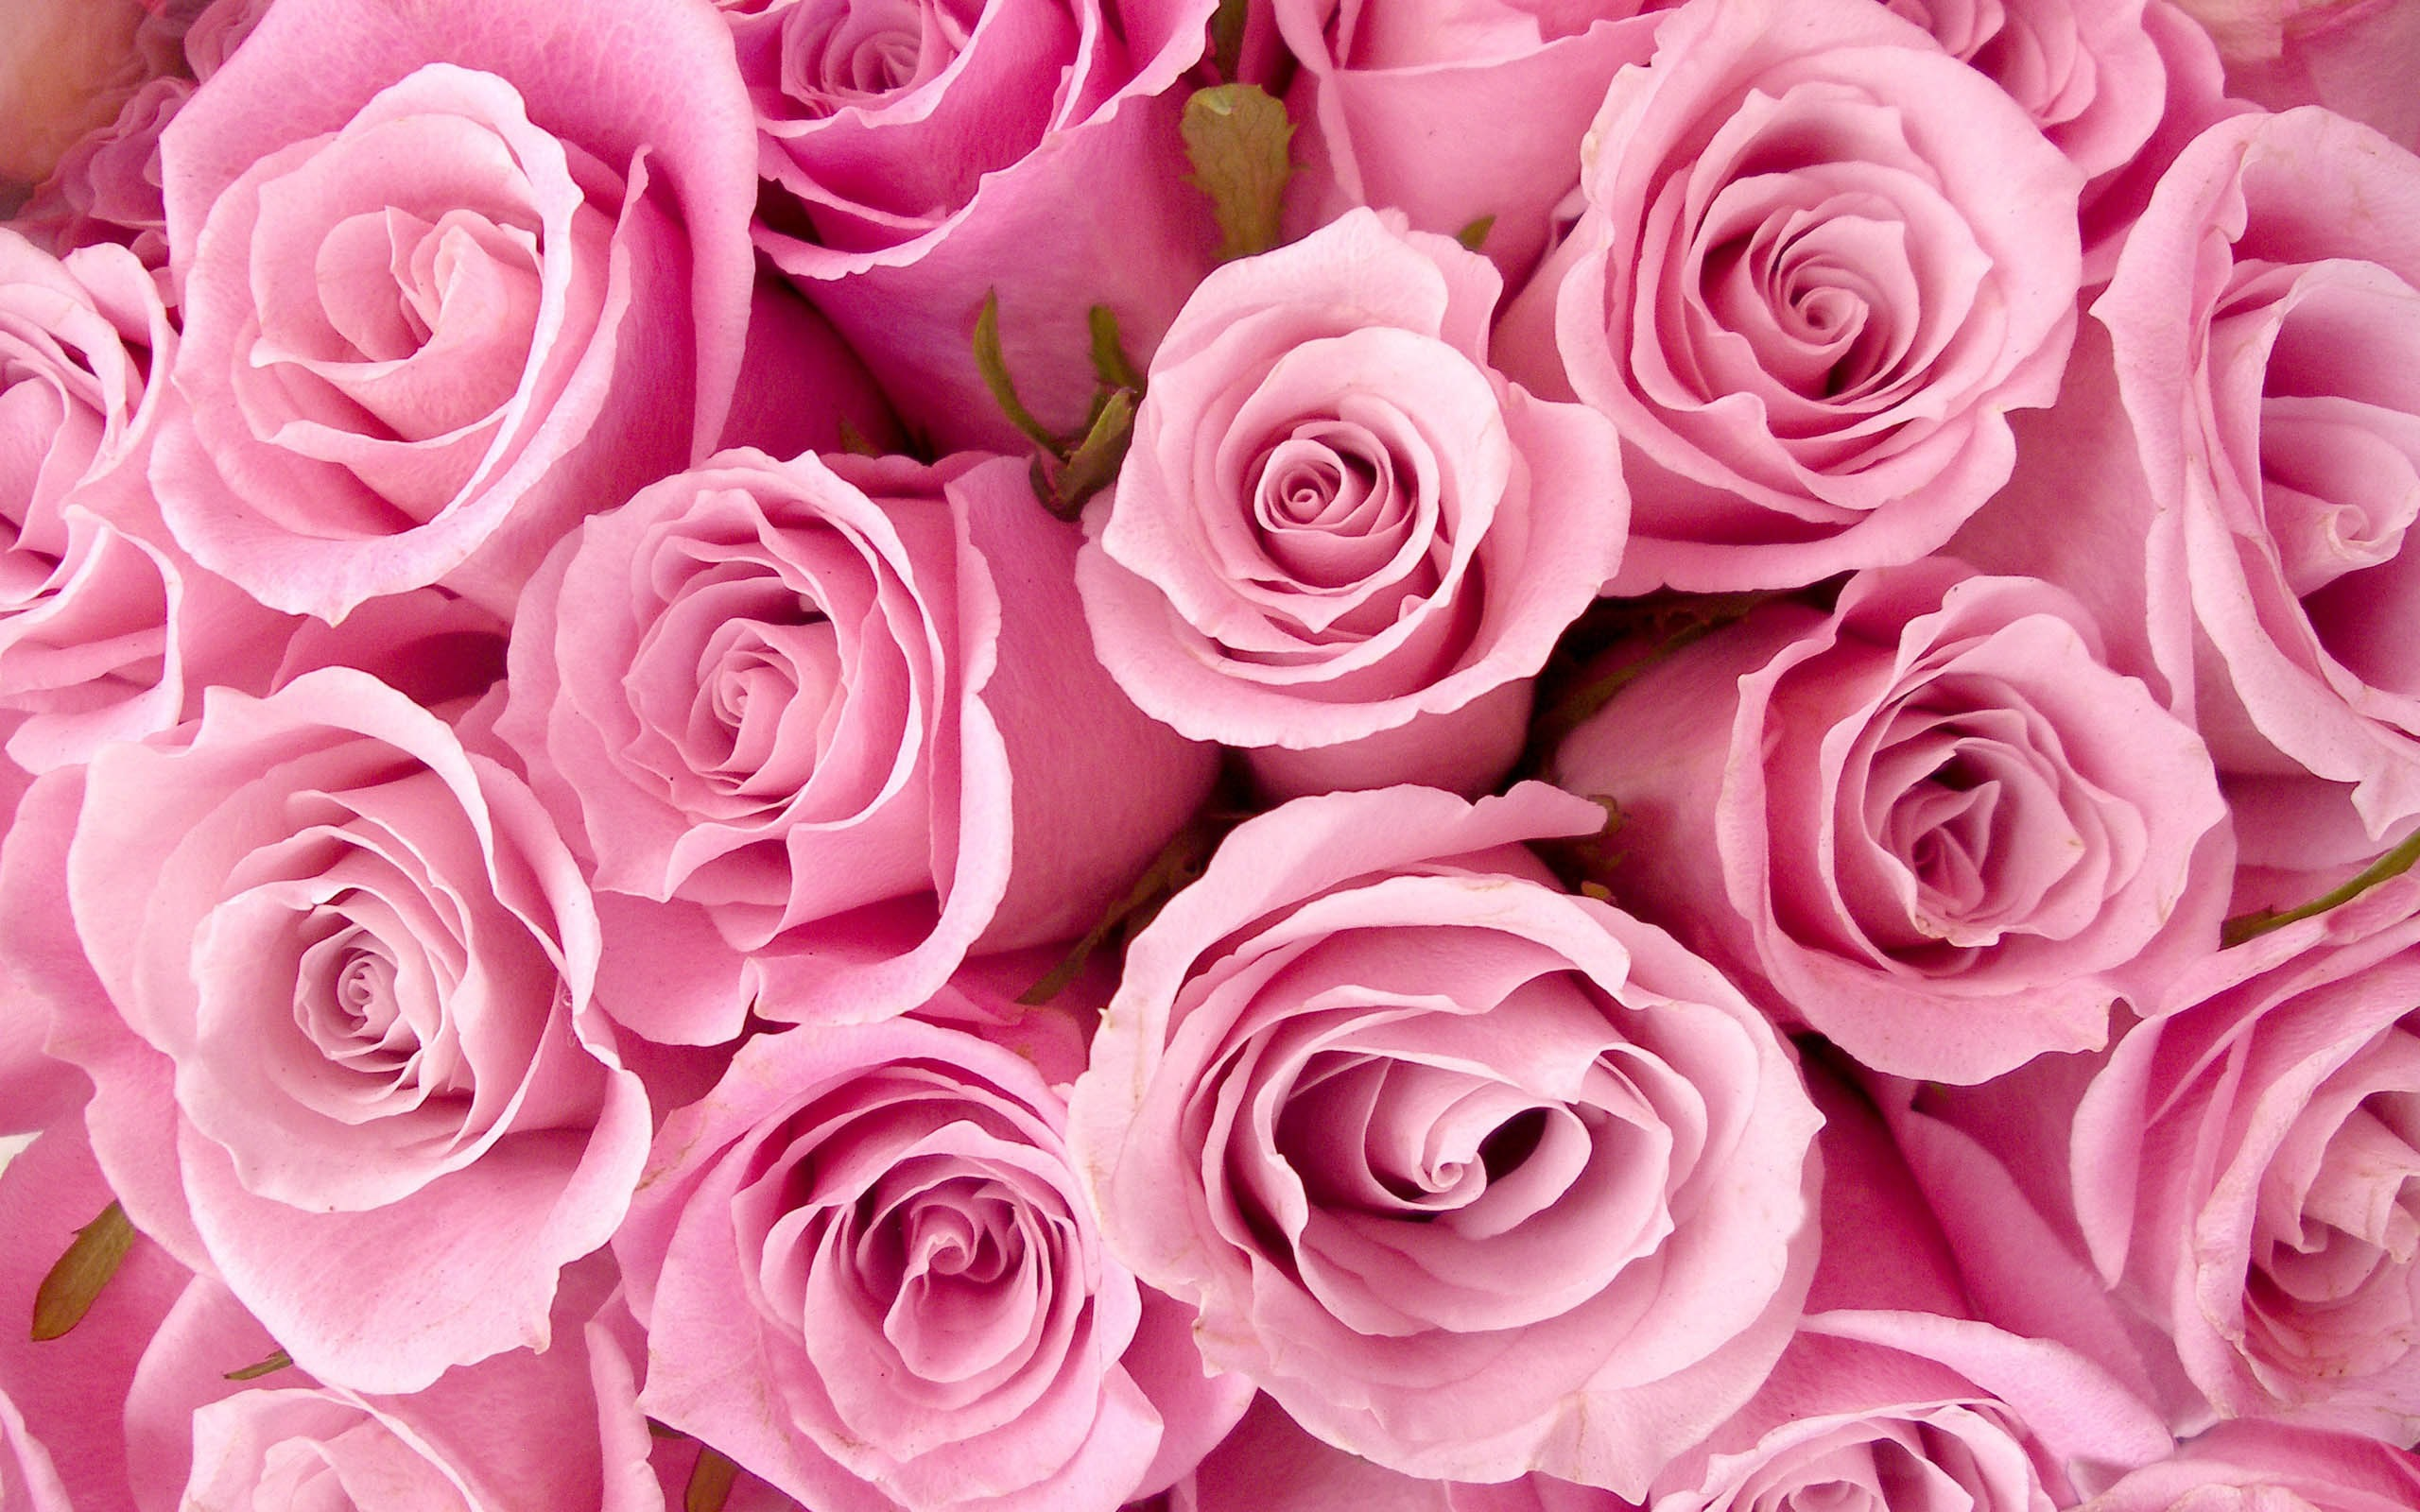 Rose Flower Tumblr Wallpaper 2560x1600 23523